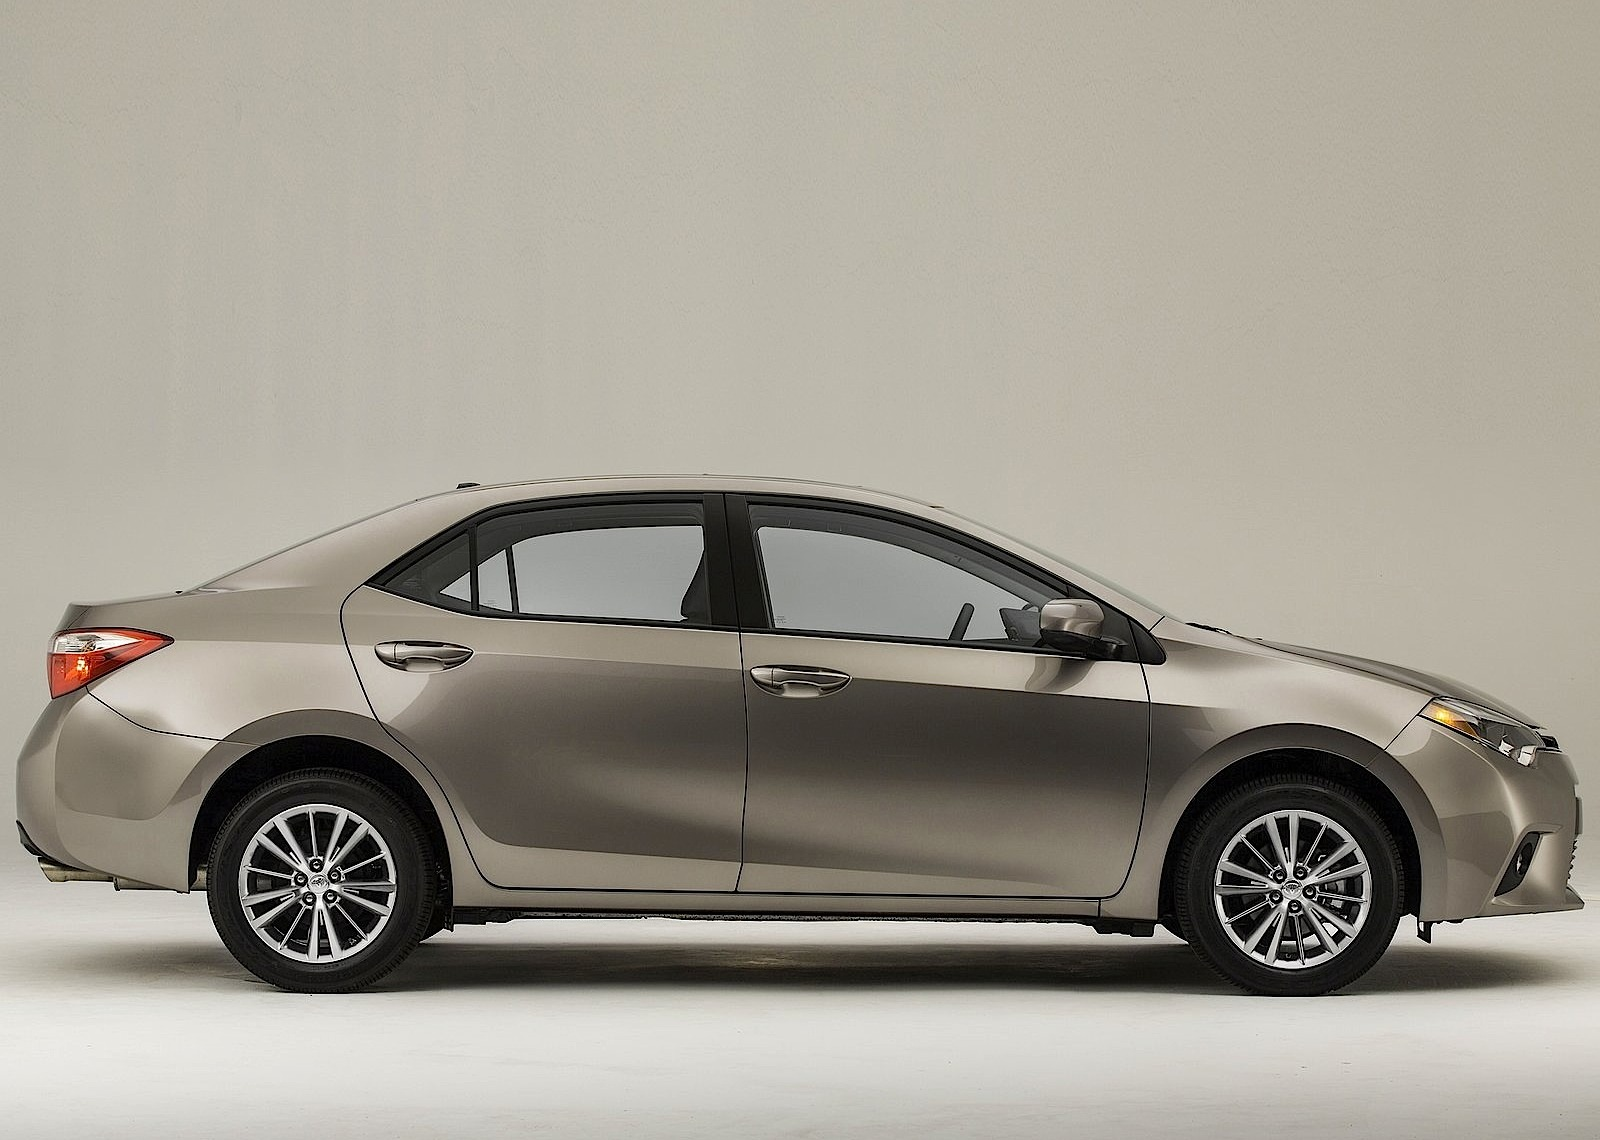 TOYOTA Corolla US specs & photos - 2013, 2014, 2015, 2016 ...